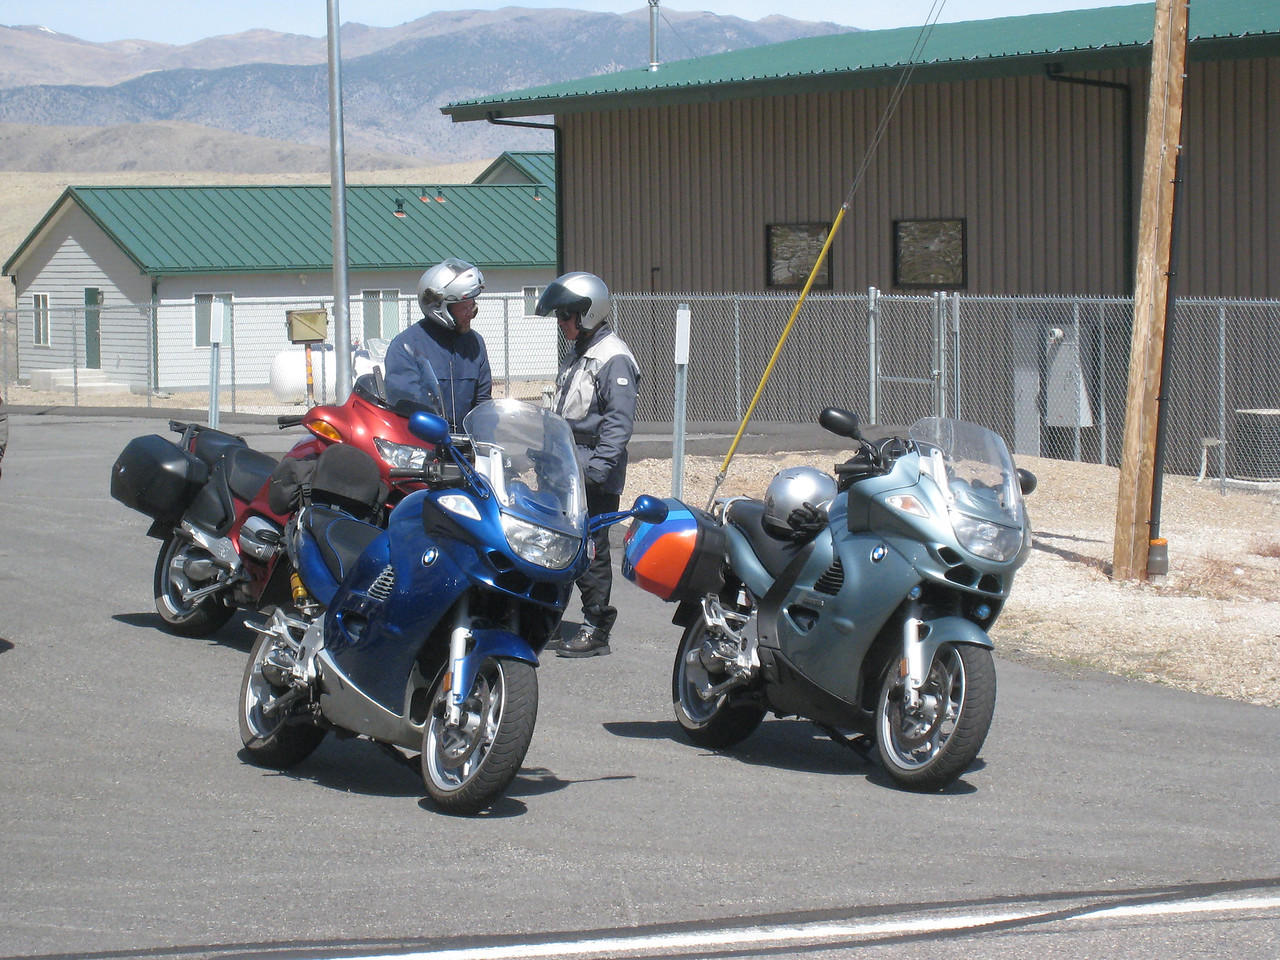 At the end of the road, near Topaz Lake, we stop at the big parking lot.